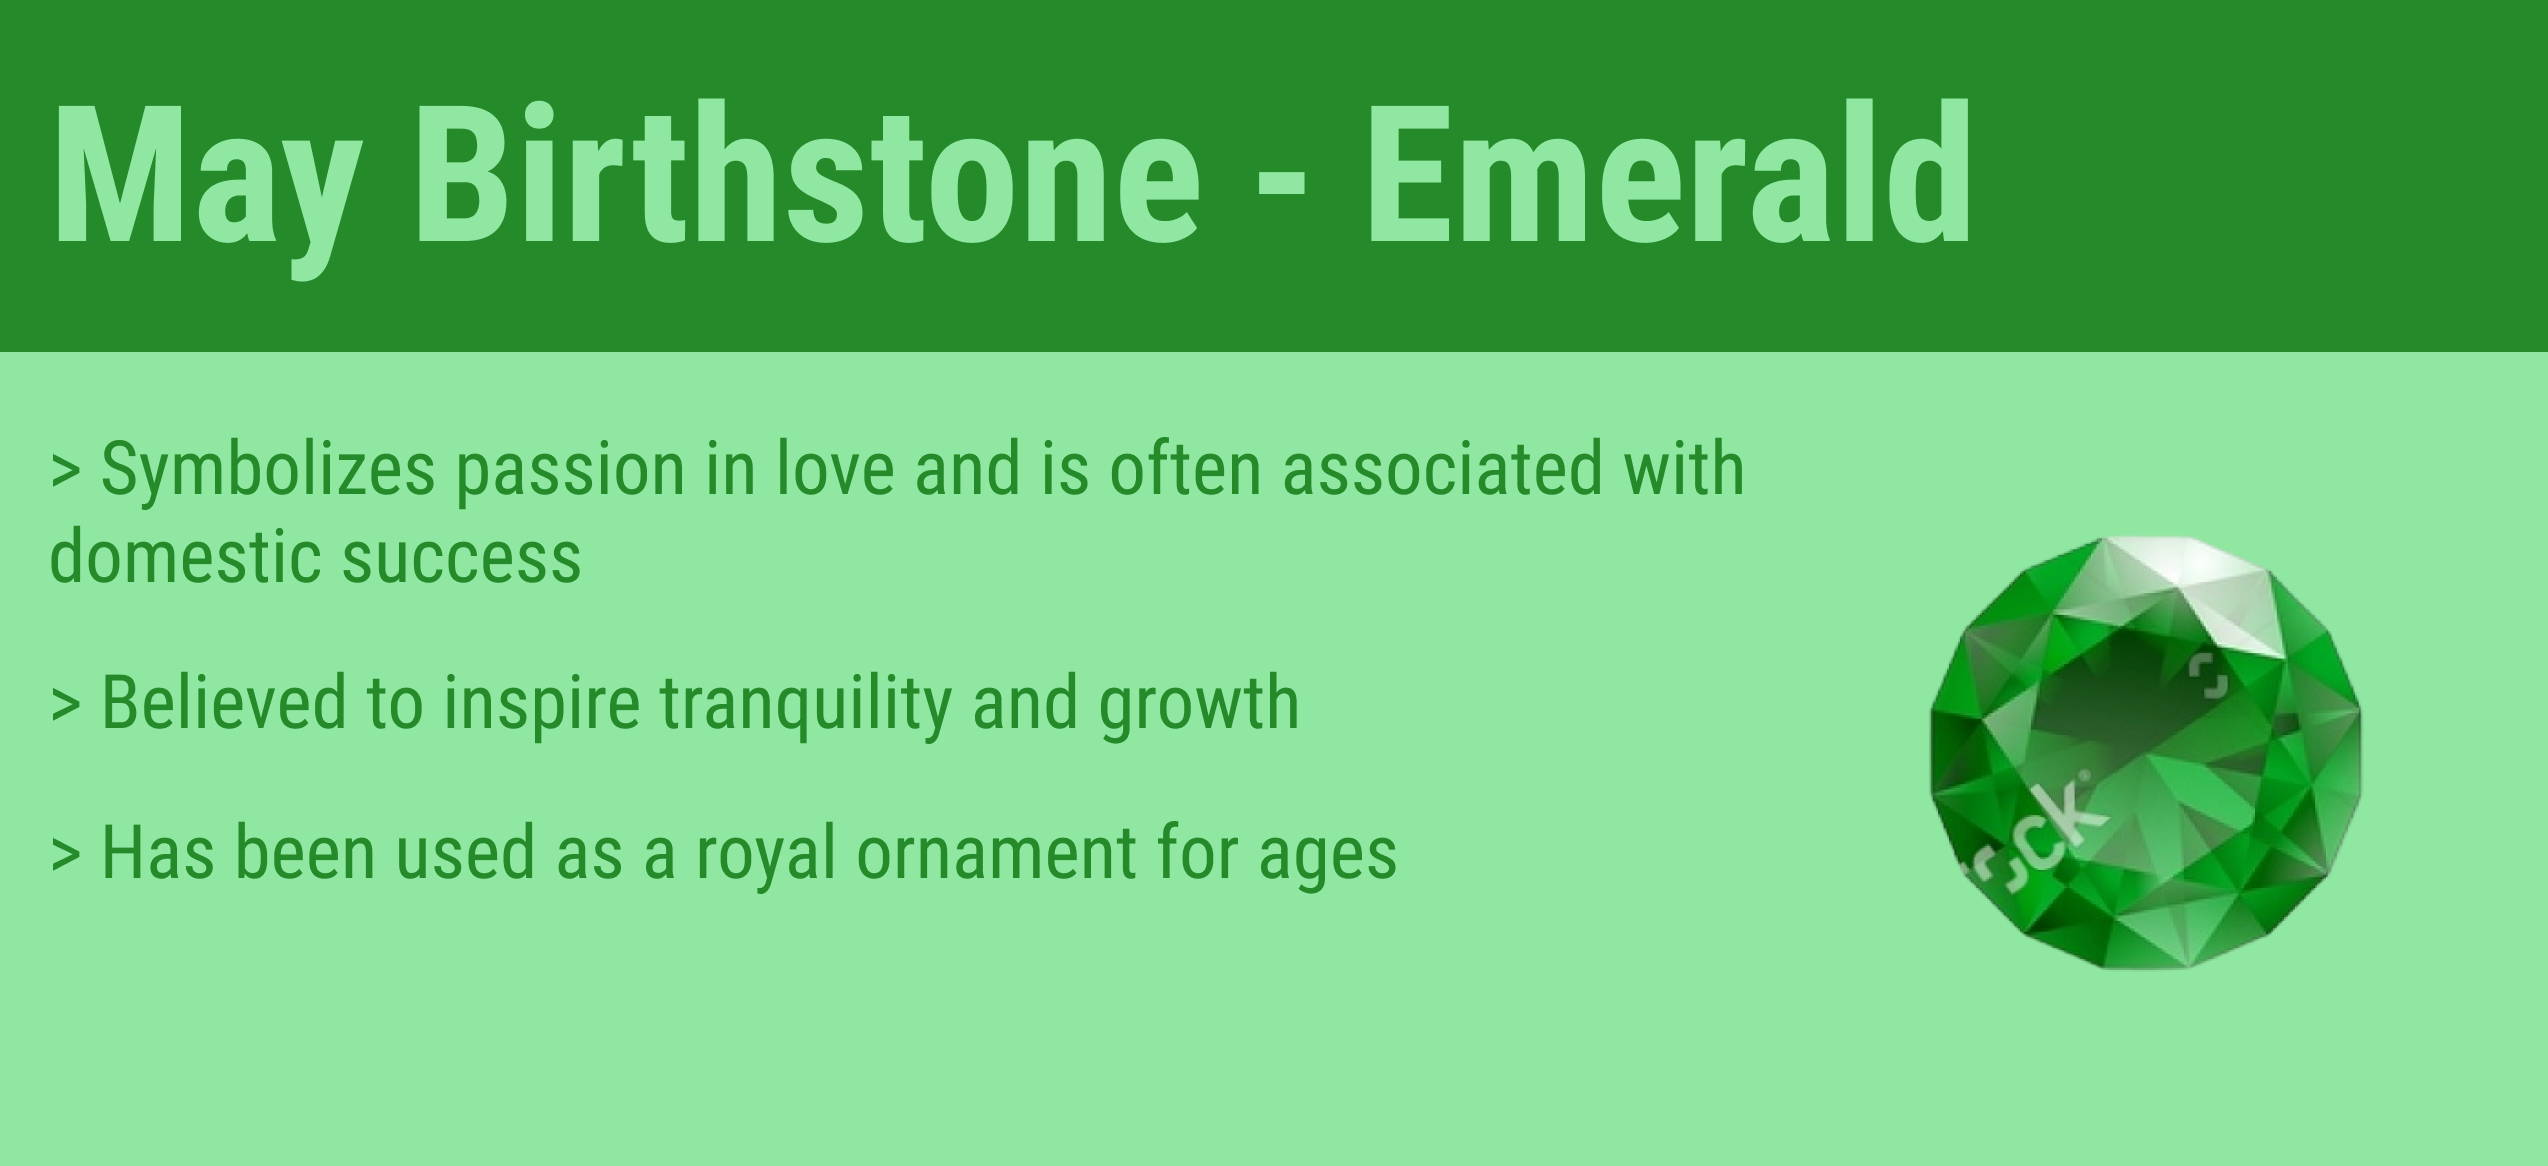 may birthstone quick facts